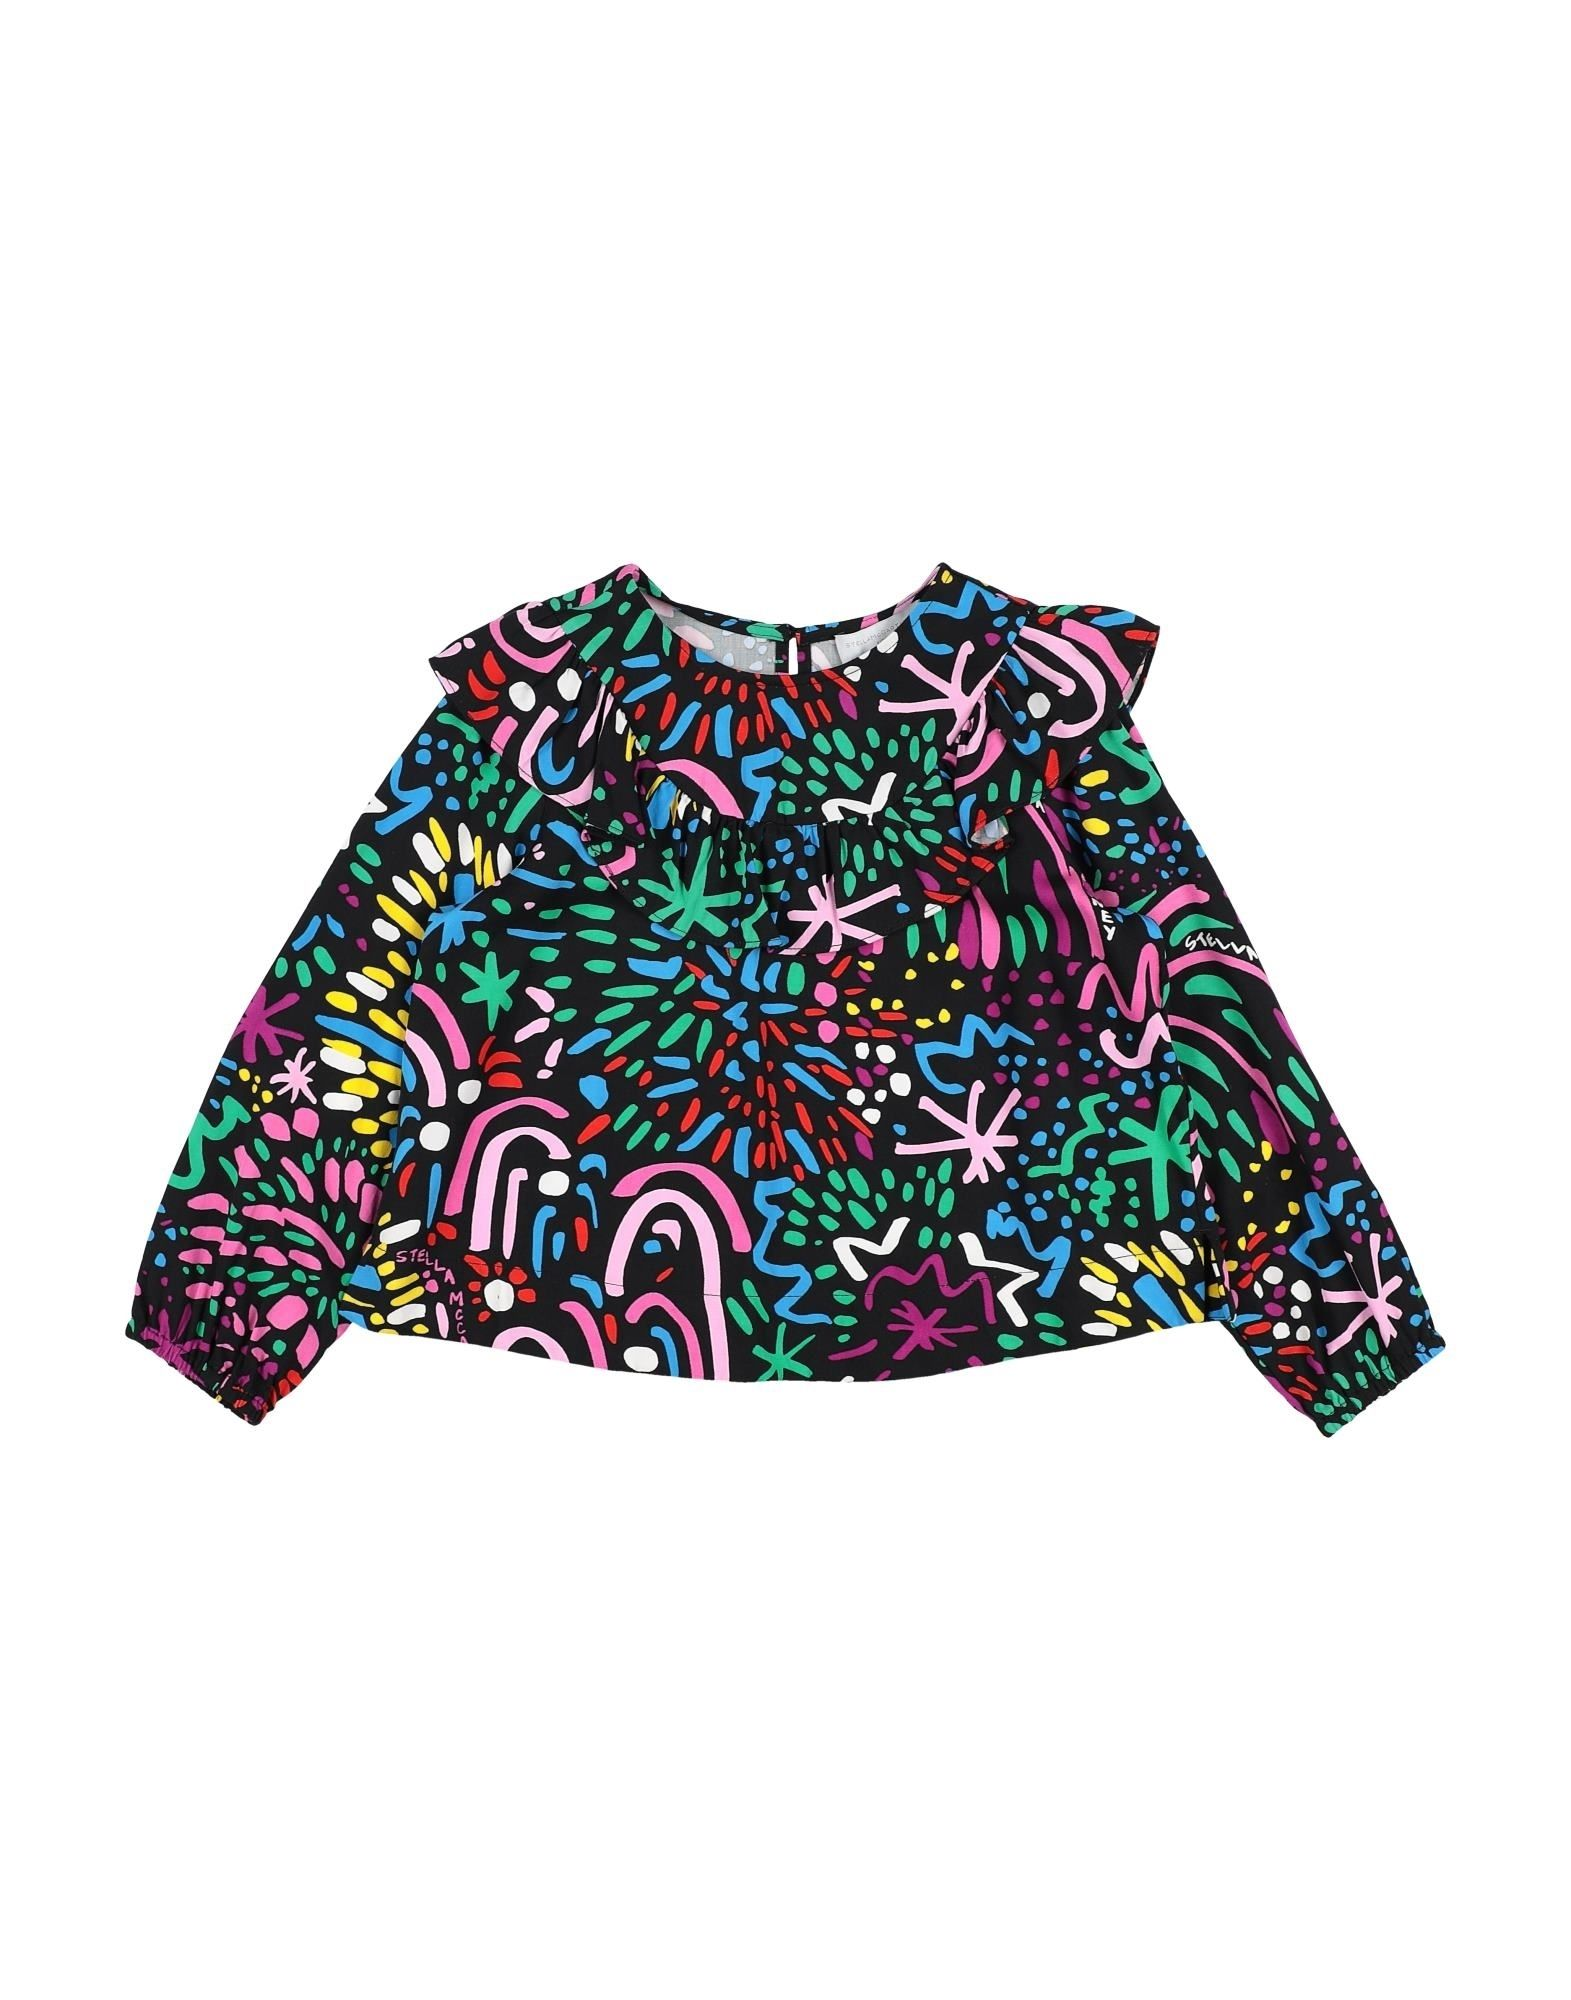 STELLA McCARTNEY KIDS Blouses. satin, ruffles, multicolor pattern, rear closure, button closing, long sleeves, round collar, no pockets, wash at 30degree c, do not dry clean, iron at 150degree c max, do not bleach, do not tumble dry. 100% Viscose